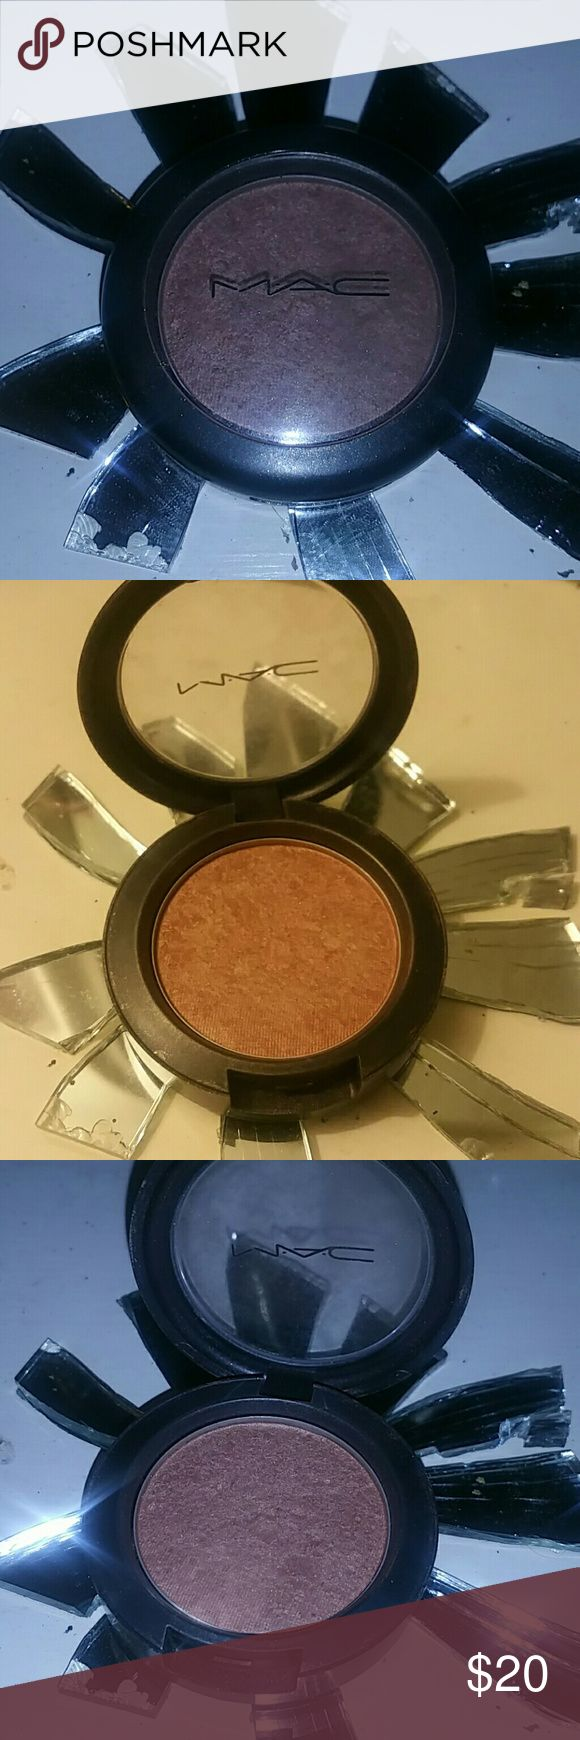 Margin frost powder blush bronzer contour Margin frost powder blush bronzer contour by MAC cosmetics full size gently used less than 10x   No trades.  Bundle deals available.  Lowballs automatically blocked. MAC Cosmetics Makeup Blush